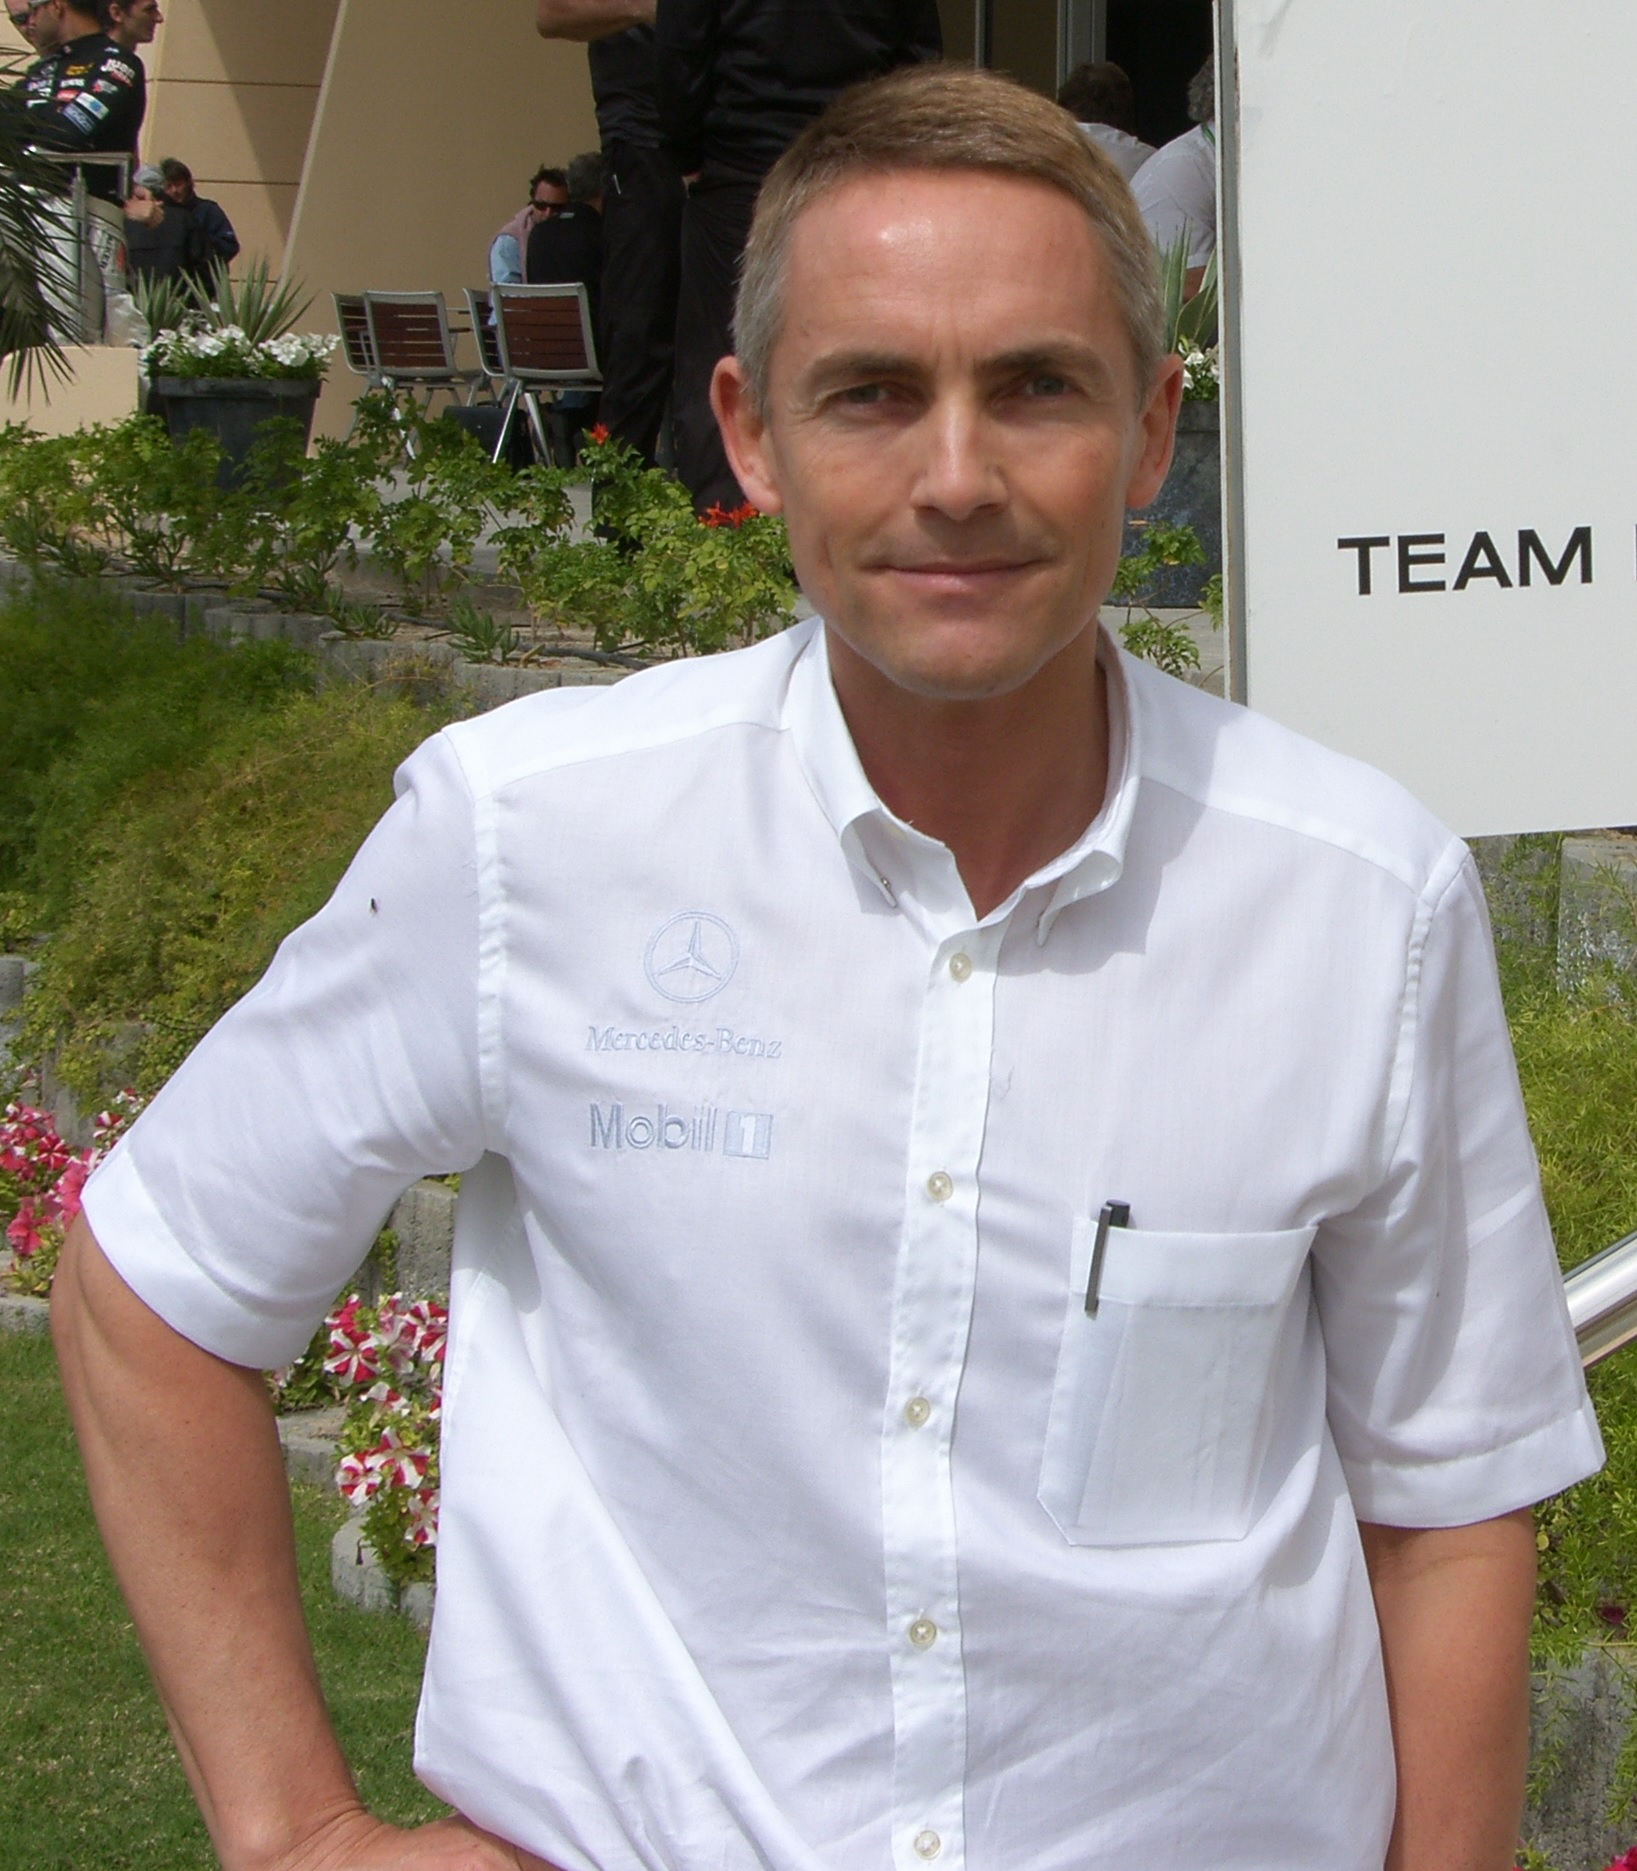 The 60-year old son of father (?) and mother(?) Martin Whitmarsh in 2018 photo. Martin Whitmarsh earned a  million dollar salary - leaving the net worth at 10 million in 2018